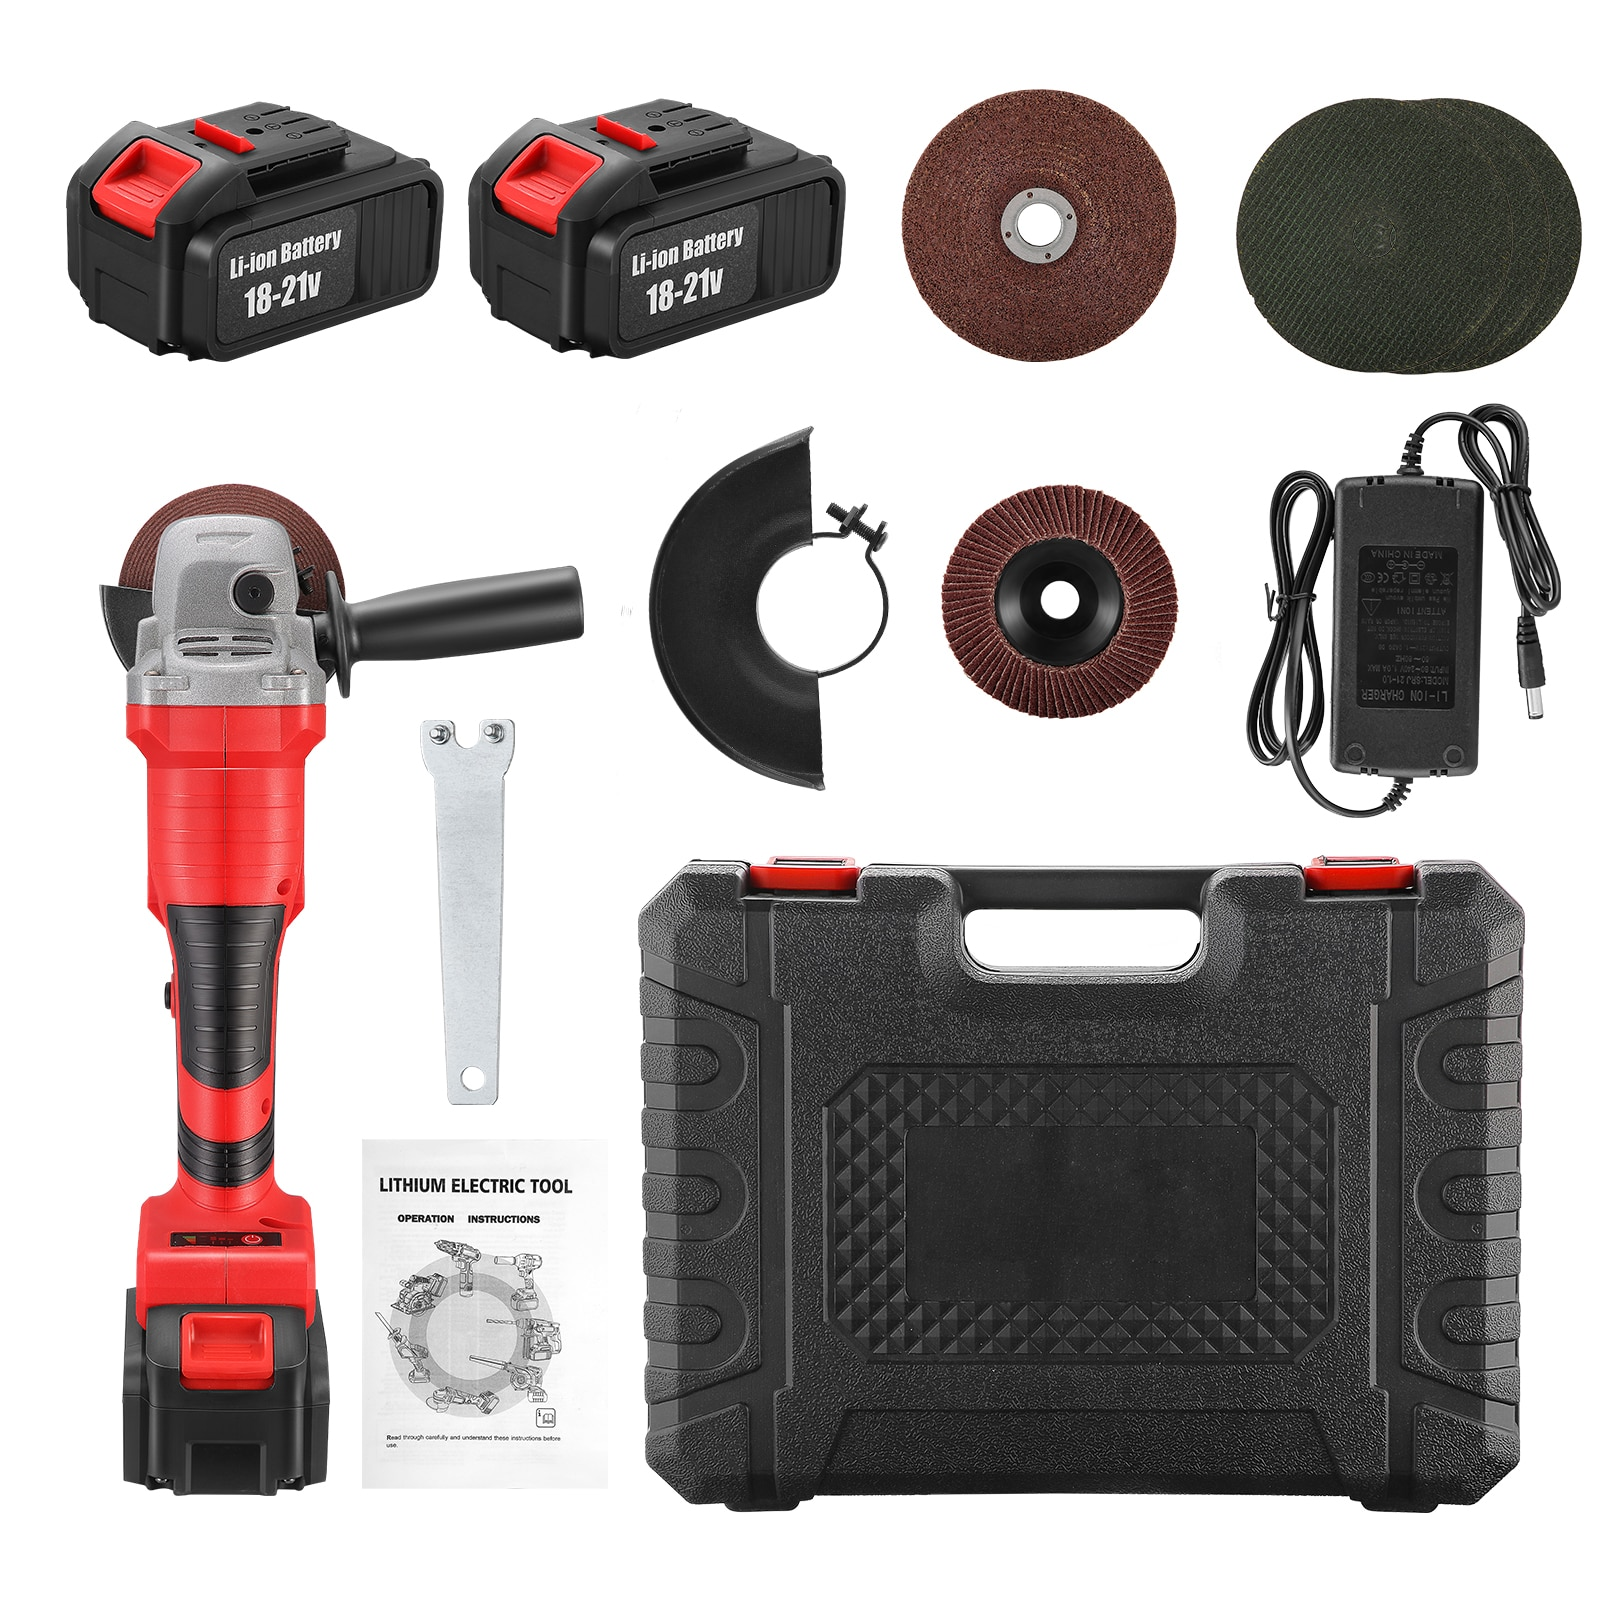 Cordless Angle Grinder Set 20V Max Brushless Motor 1-Position Auxiliary Handle, 5pc Saw Blade for Grinding Cutting Grooving